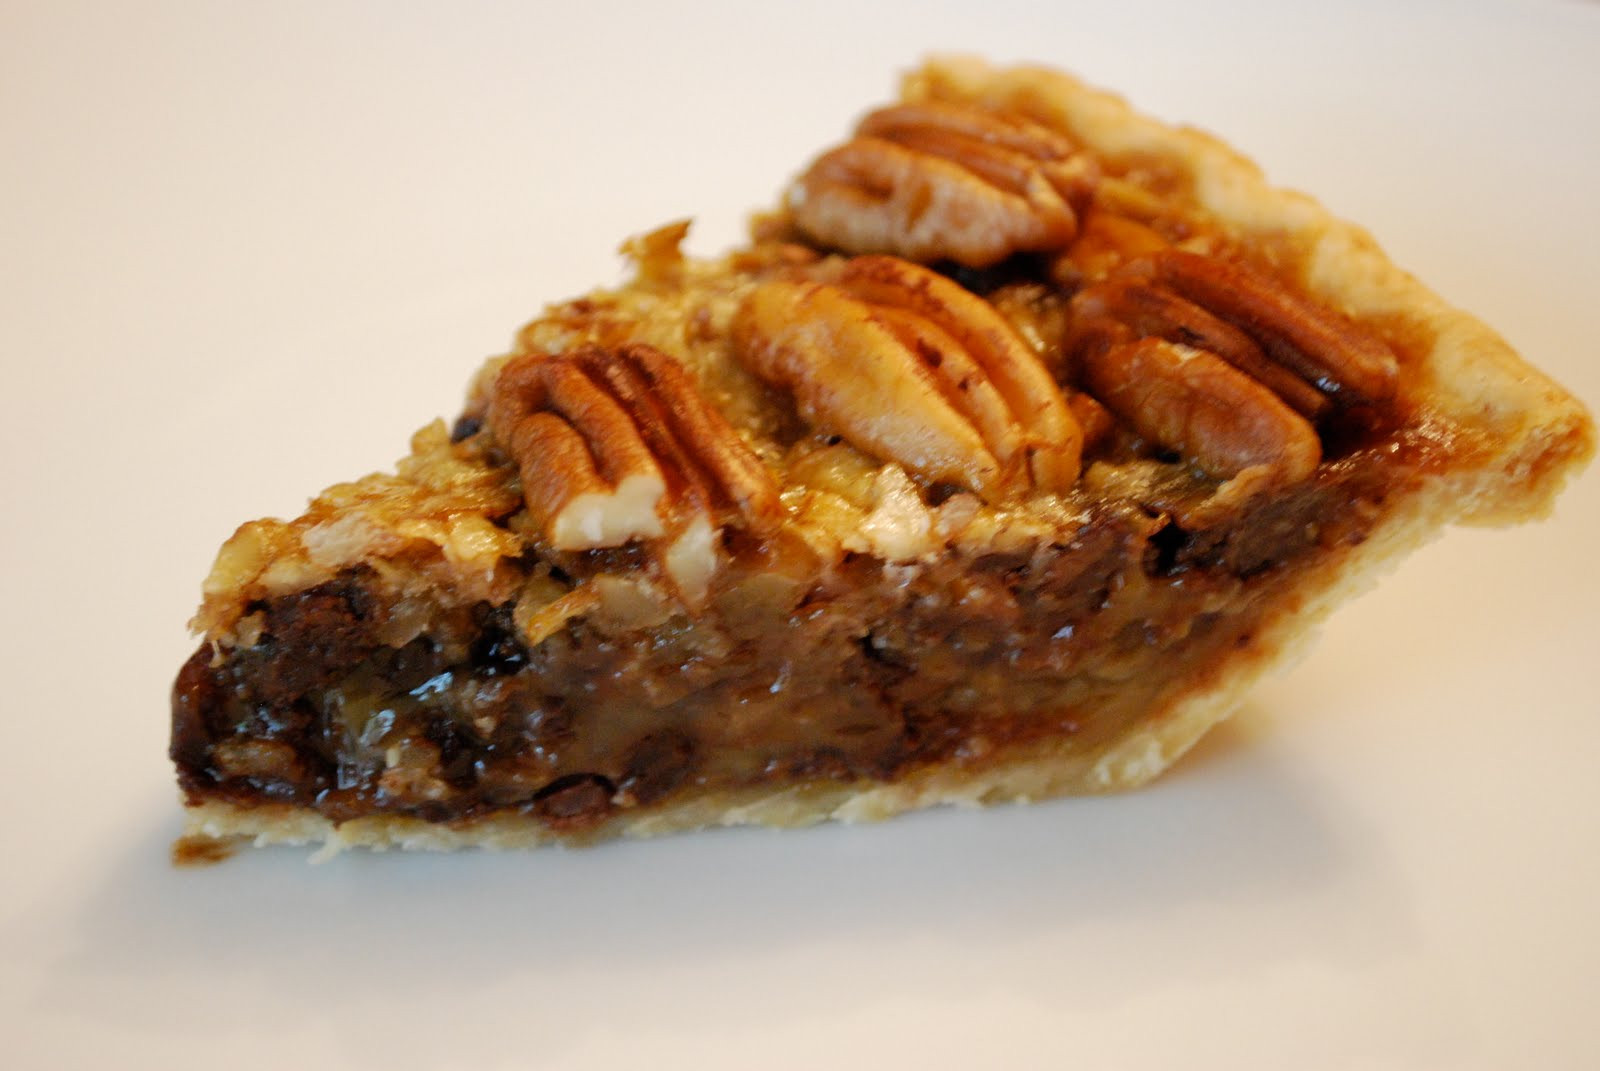 Chocolate Bourbon Pecan Pie  Bake Your Heart Out Chocolate Bourbon Pecan Pie